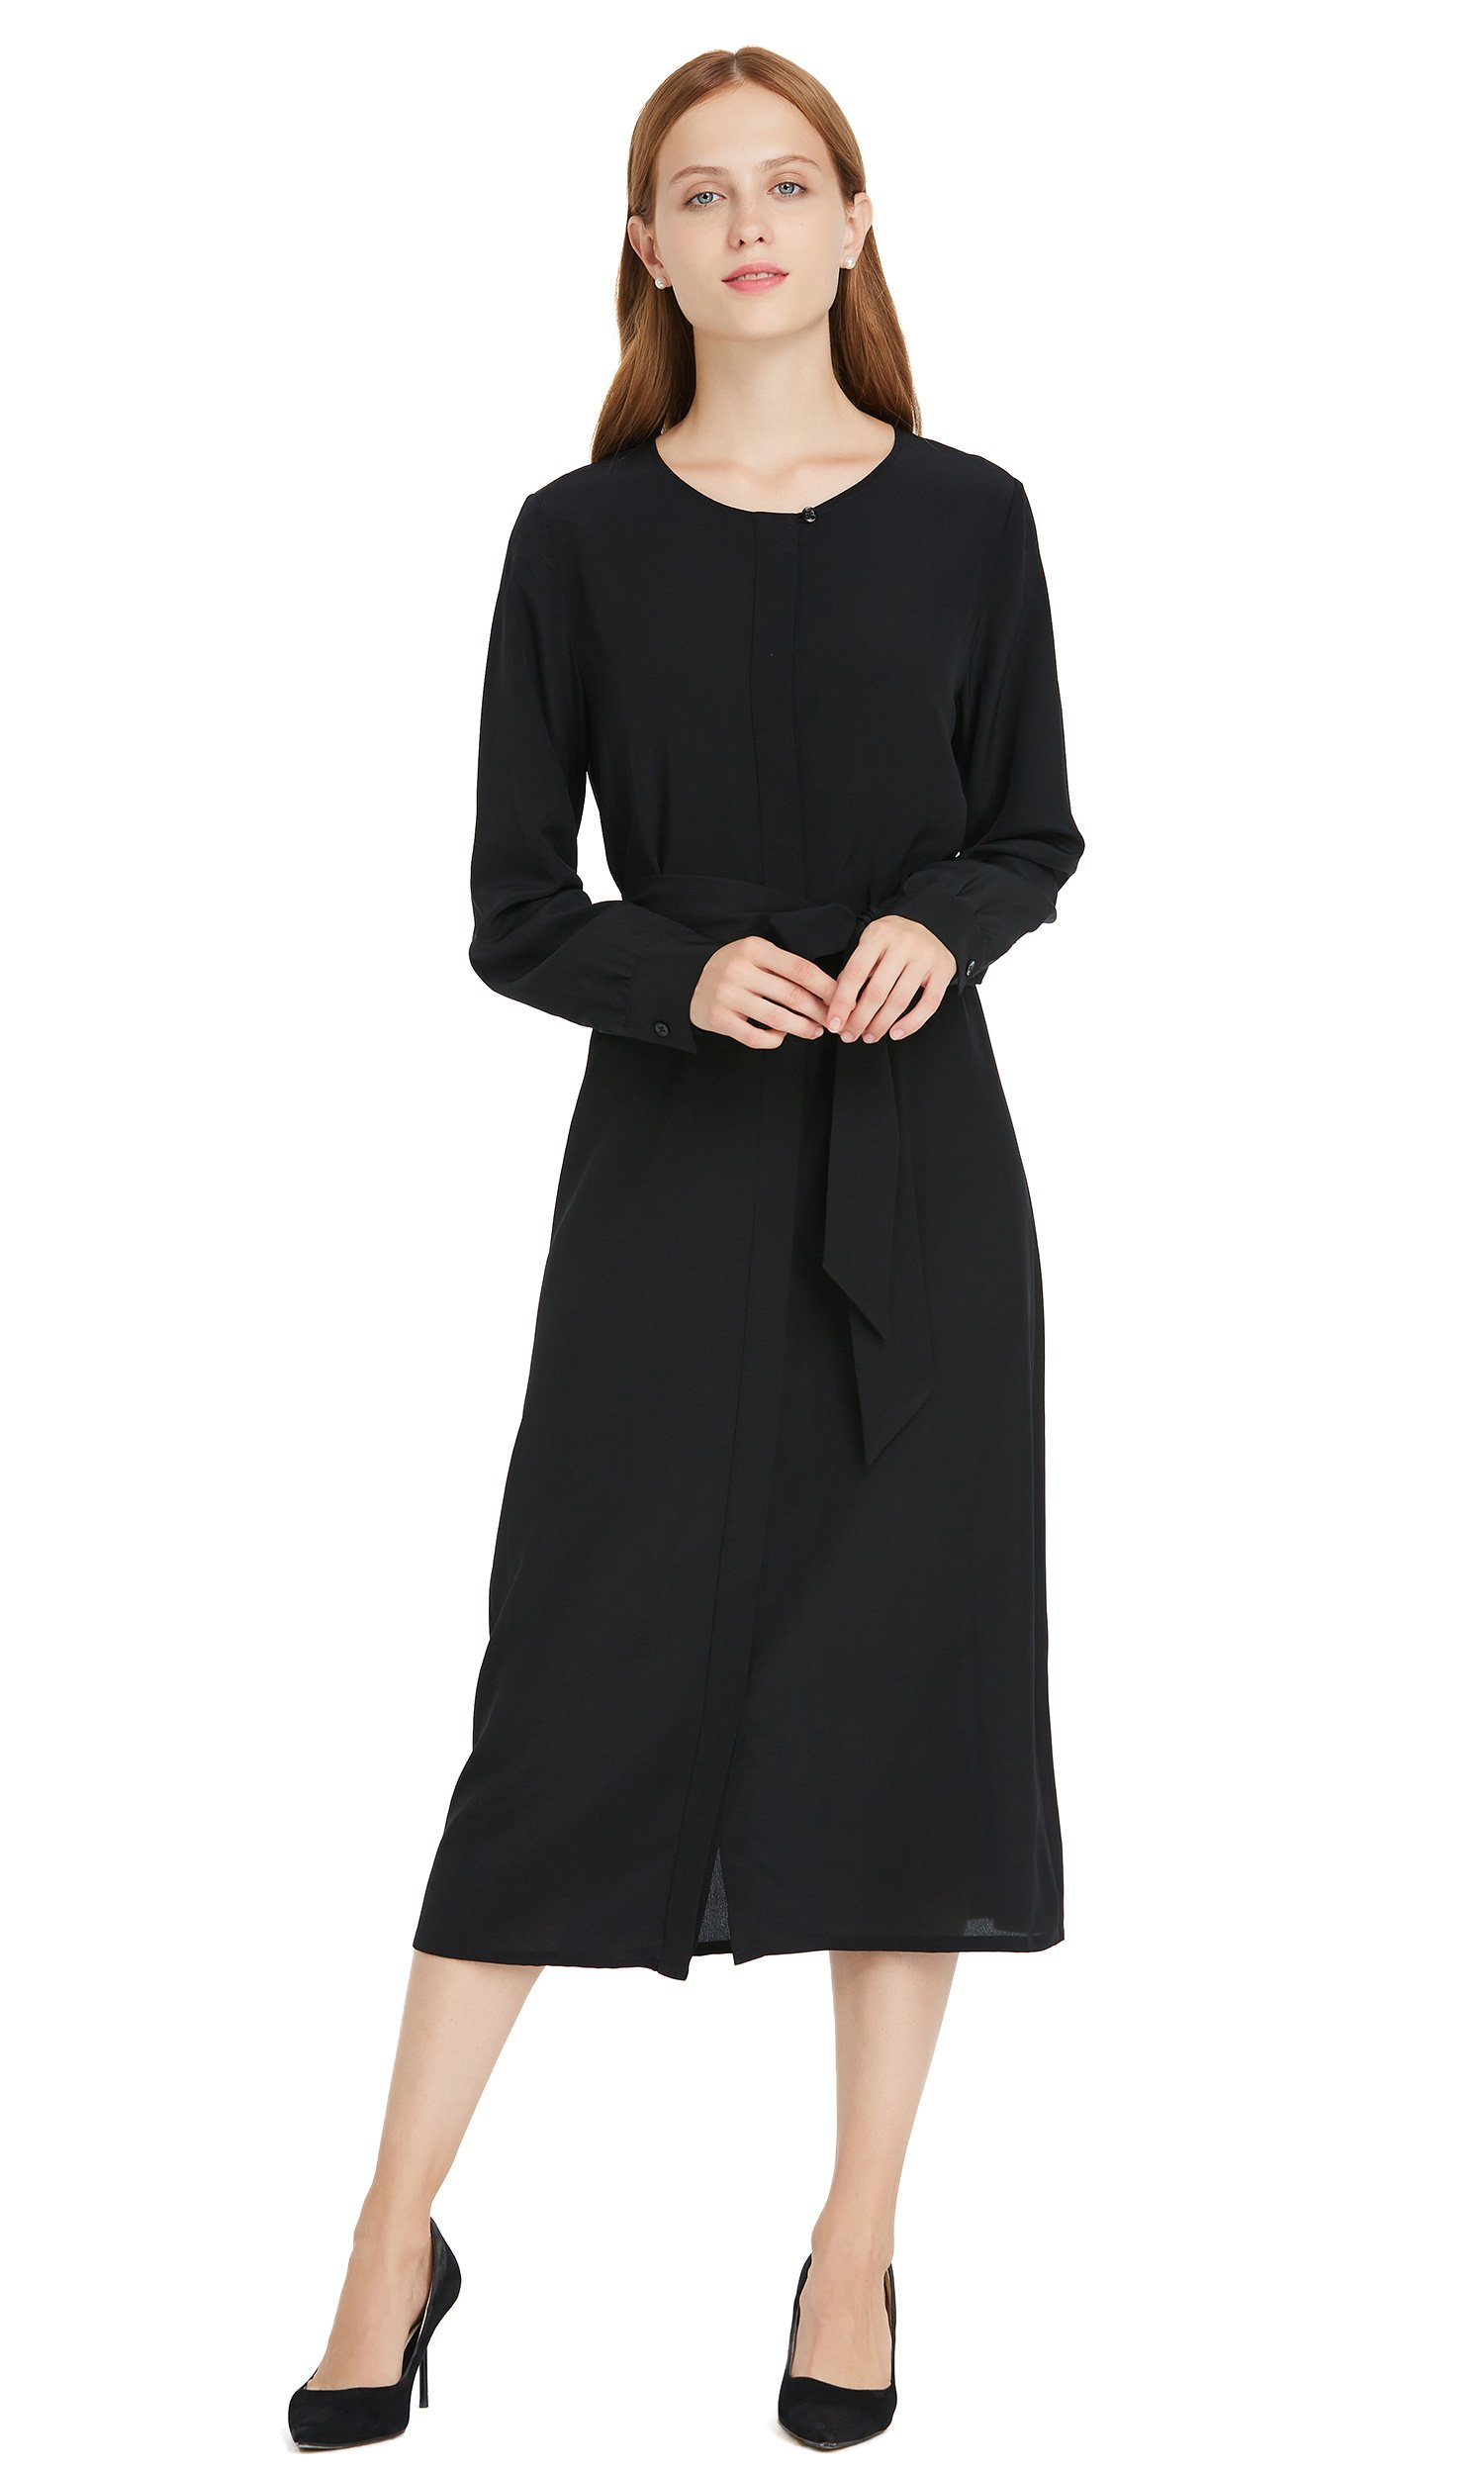 LilySilk Pure Silk Dress for Womens 18MM Basic Round Neck O neck Long Sleeve Maxi Vintage Style Black M/8-10